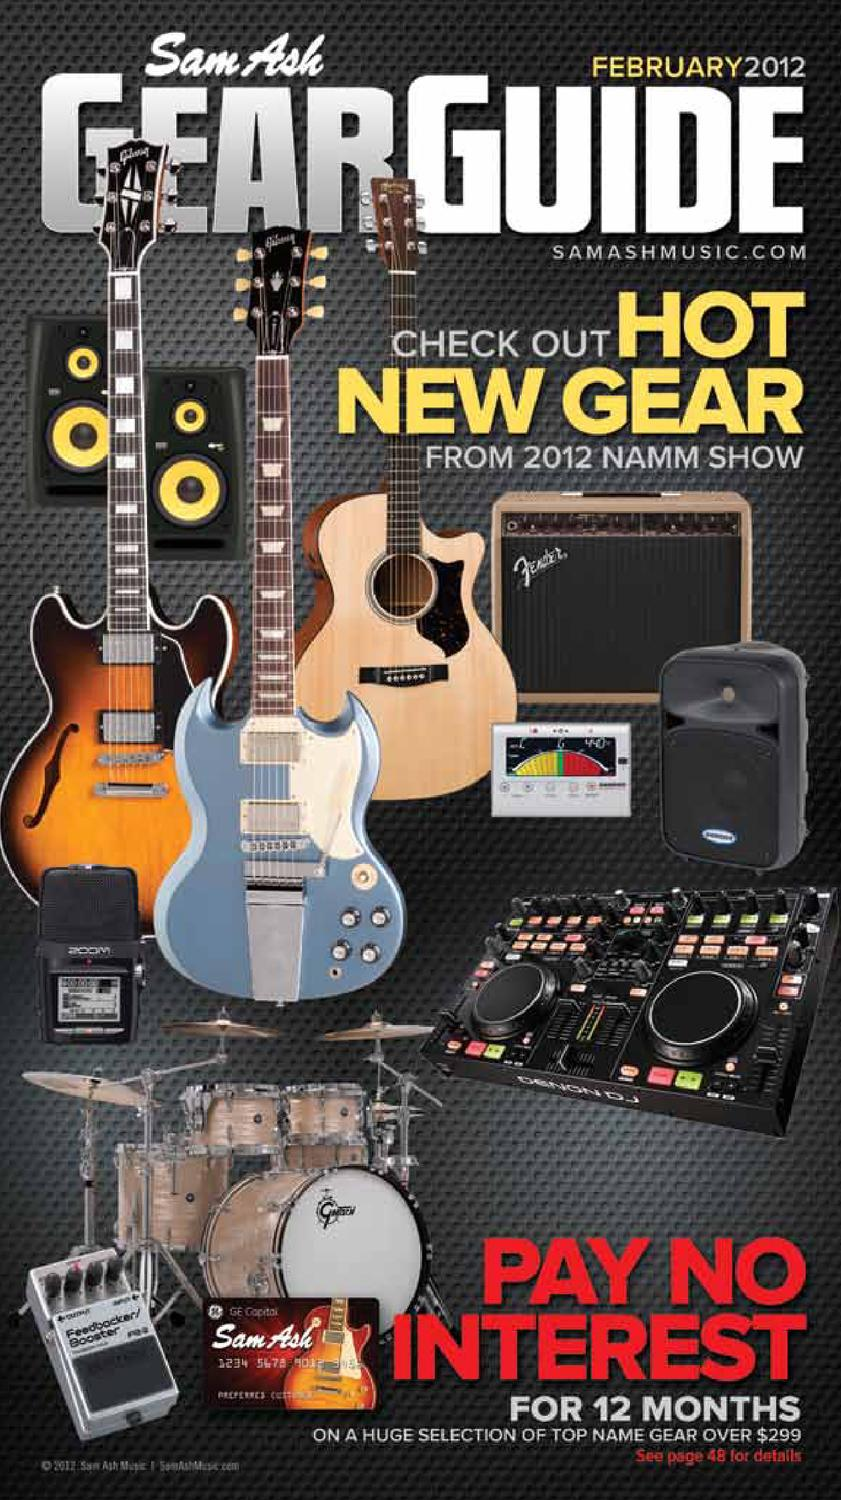 Sam Ash Gear Guide February 2012 By Music Corp Issuu Remote Controller Wiring 25mm Miniplug And N3 Plug Tom Held